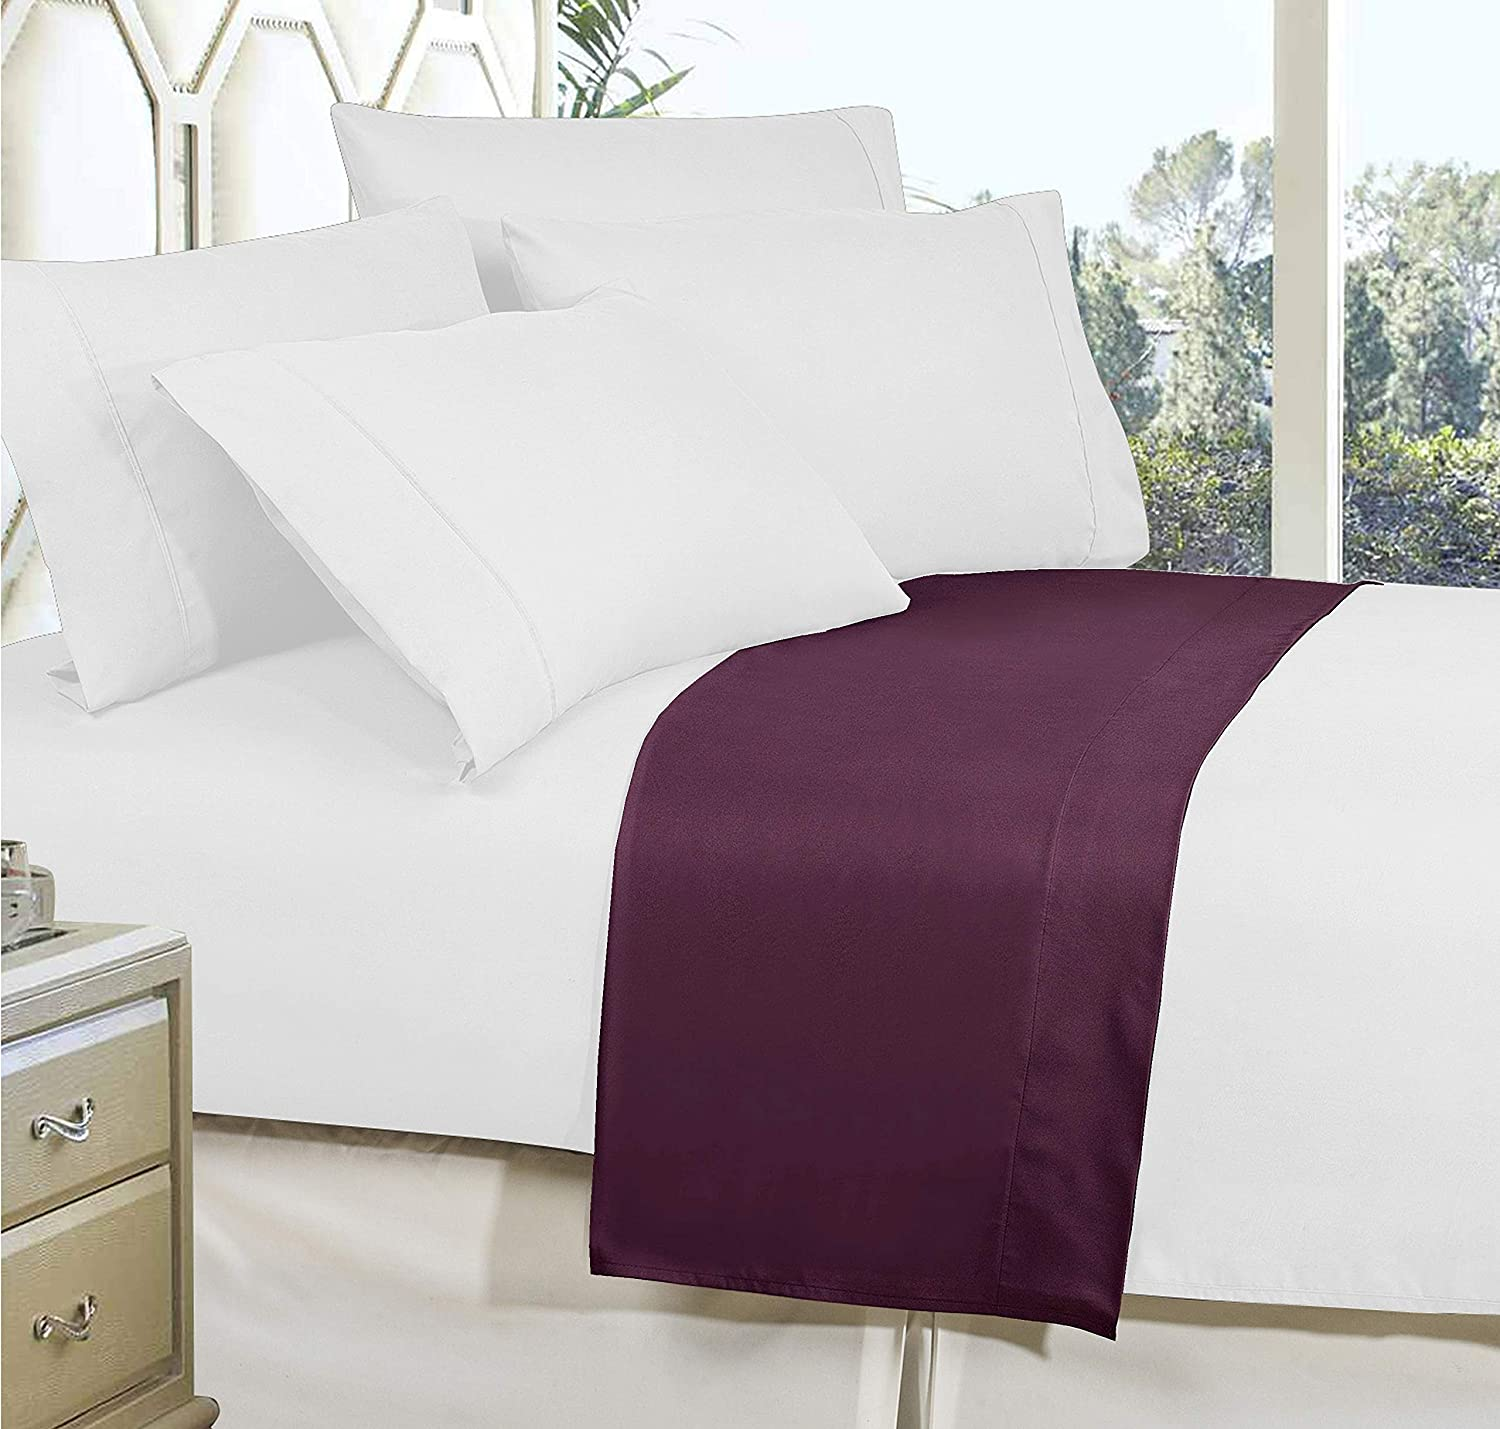 Elegant Comfort Premium Hotel 1-Piece Stain-Resistant 100/% Hypoallergenic Wrinkle-Free Full Eggplant-Purple Luxury and Softest 1500 Thread Count Egyptian Quality Bedding Flat Sheet